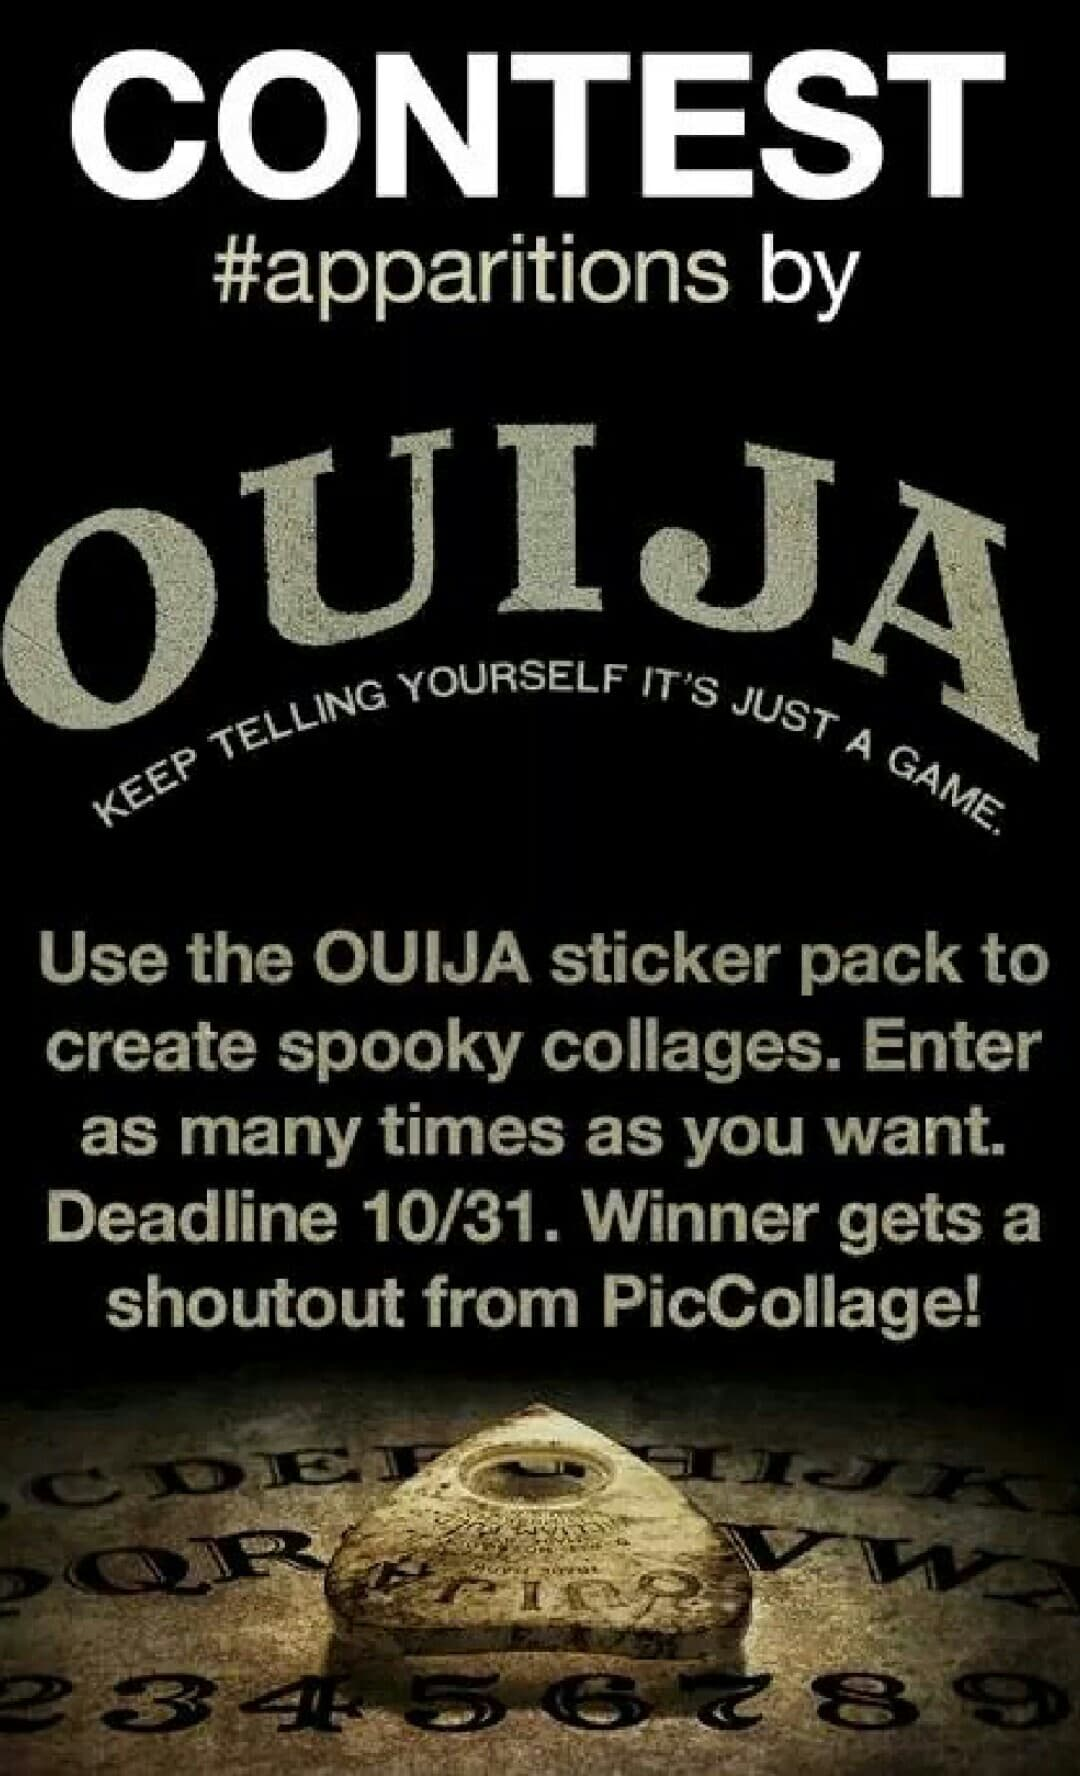 Use the OUIJA stickers to get a shoutout from PicCollage!